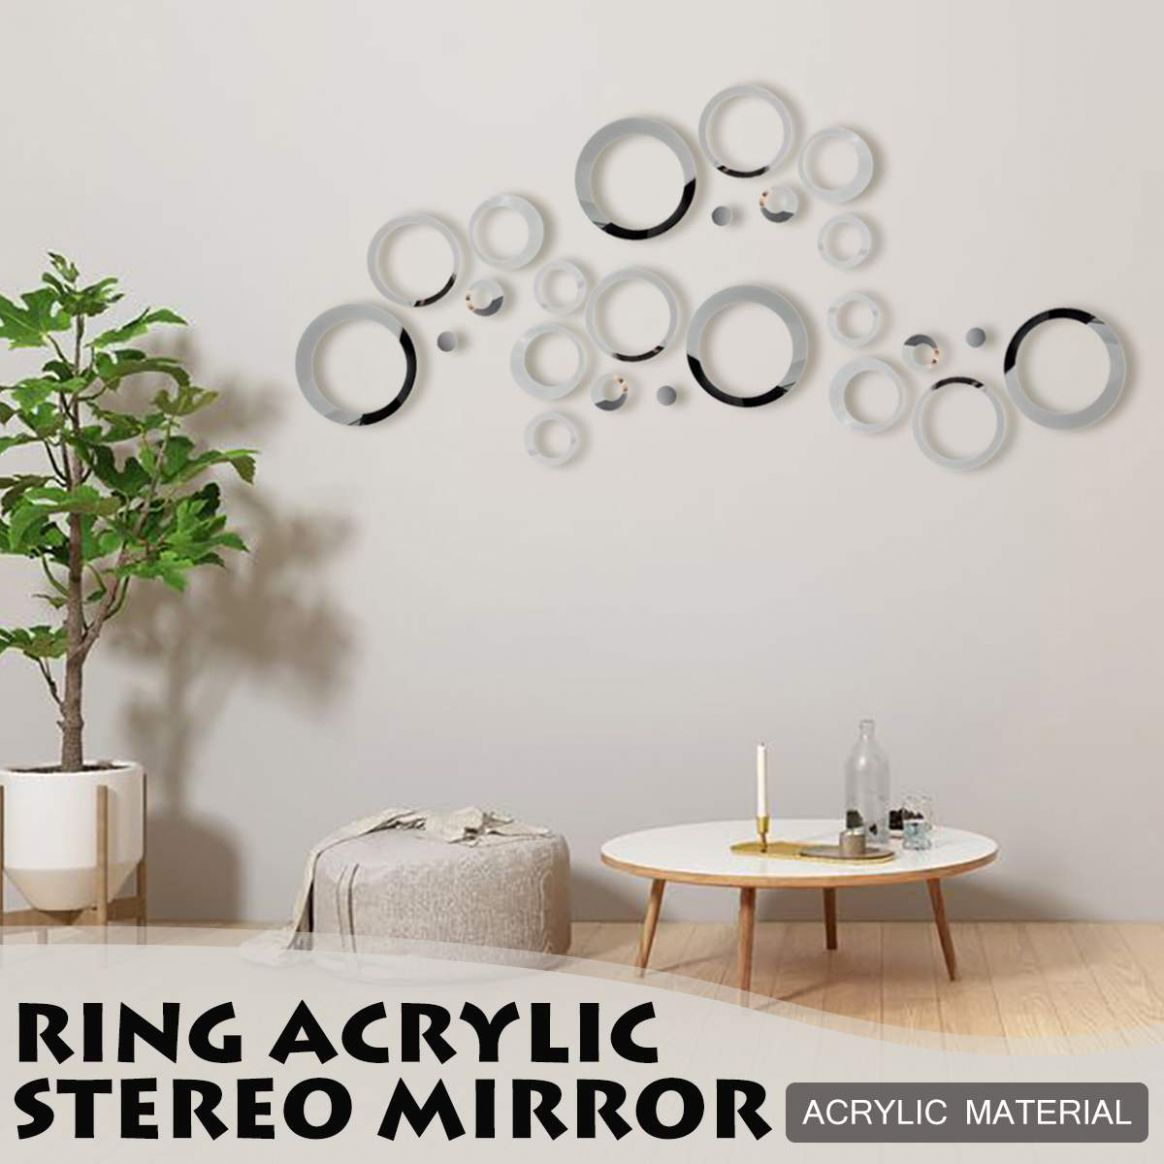 US $9.79 9% OFF|94pcs/set 9D DIY Circles Wall Sticker Home Decoration  Mirror Wall Stickers for TV Background Home Decor Acrylic Decor Wall ...